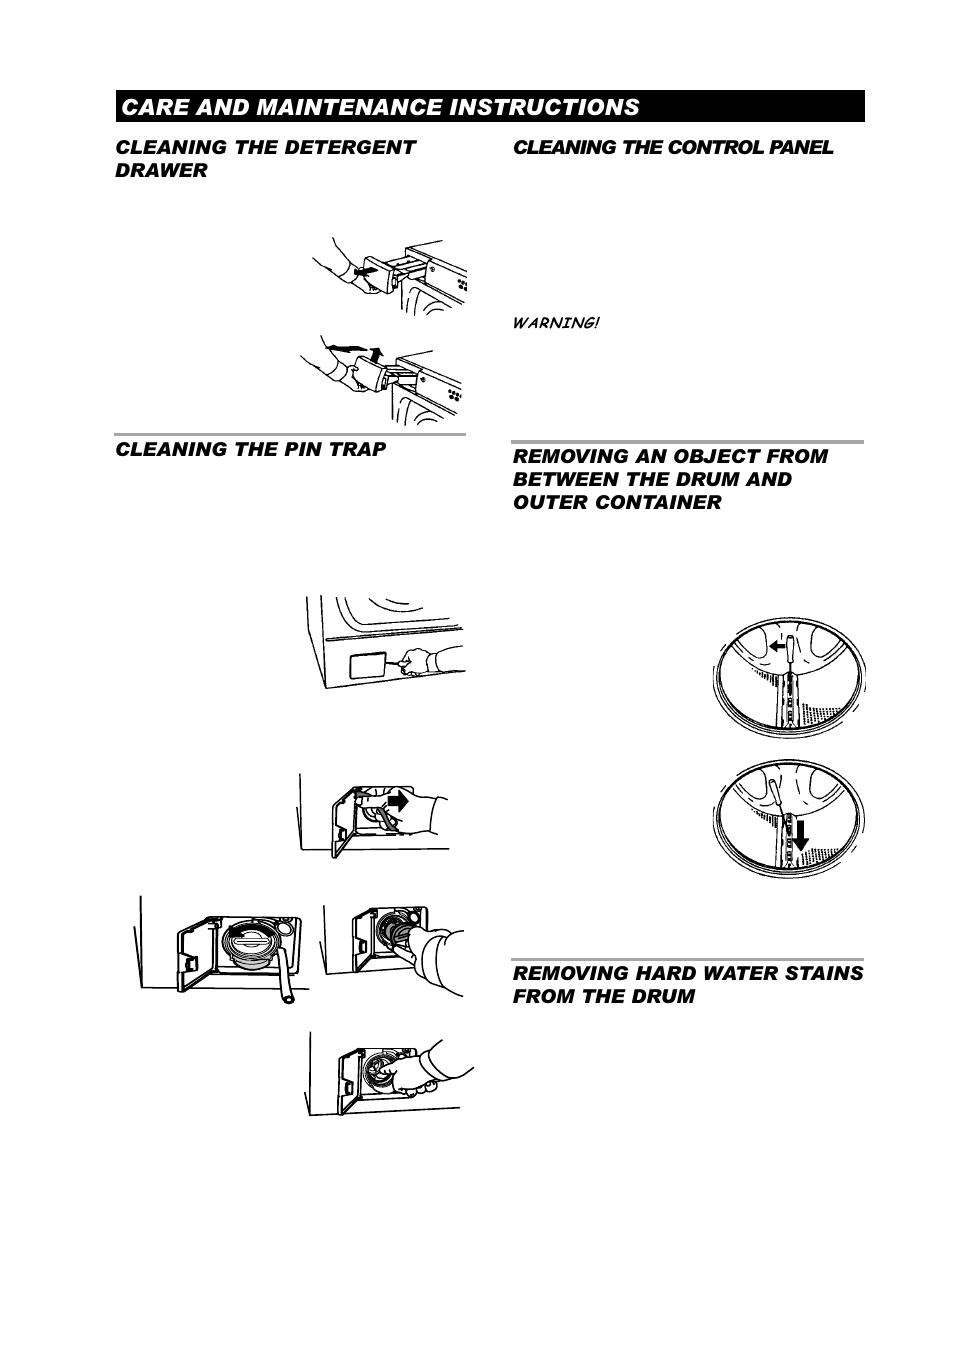 Care and maintenance instructions, Cleaning the detergent